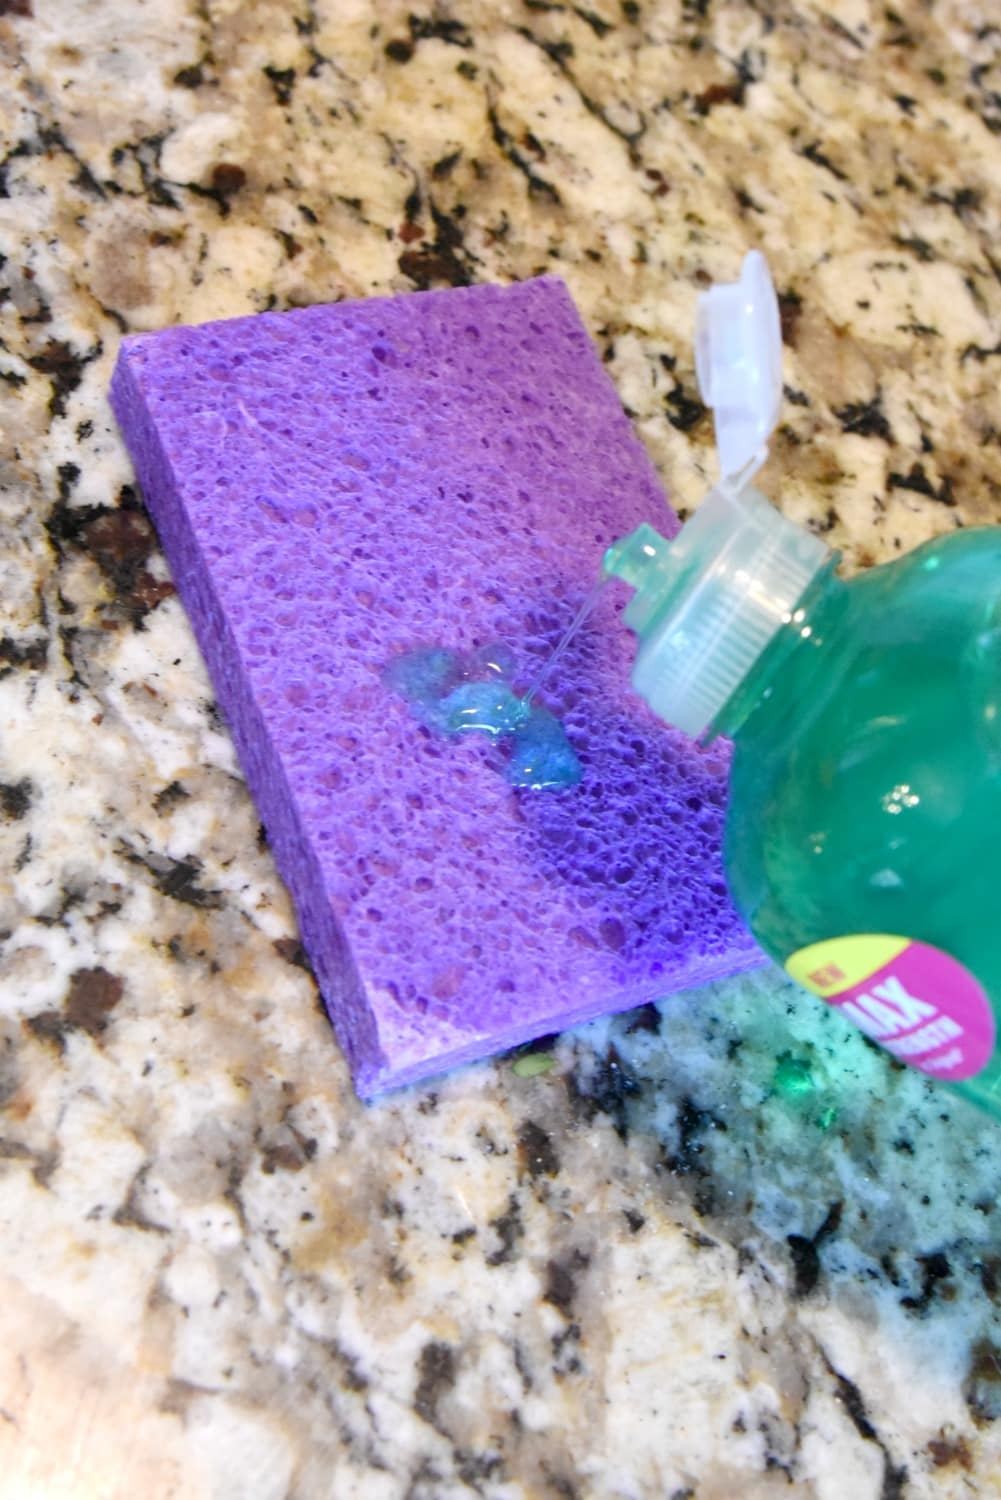 cleaning with sponges